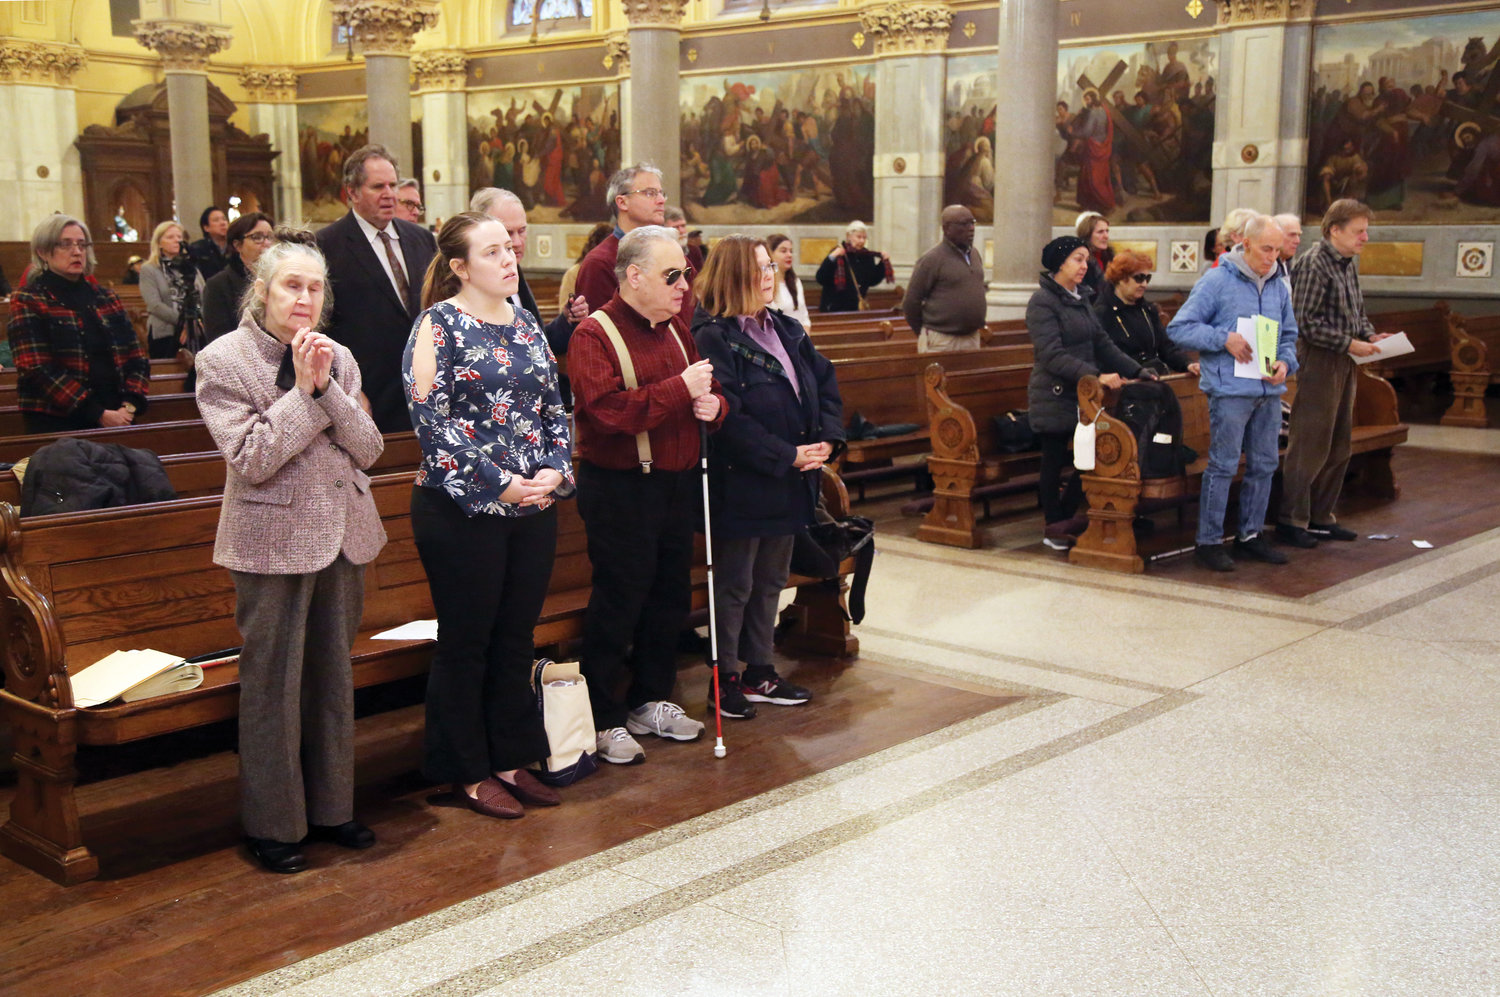 Congregants participate in the Mass.